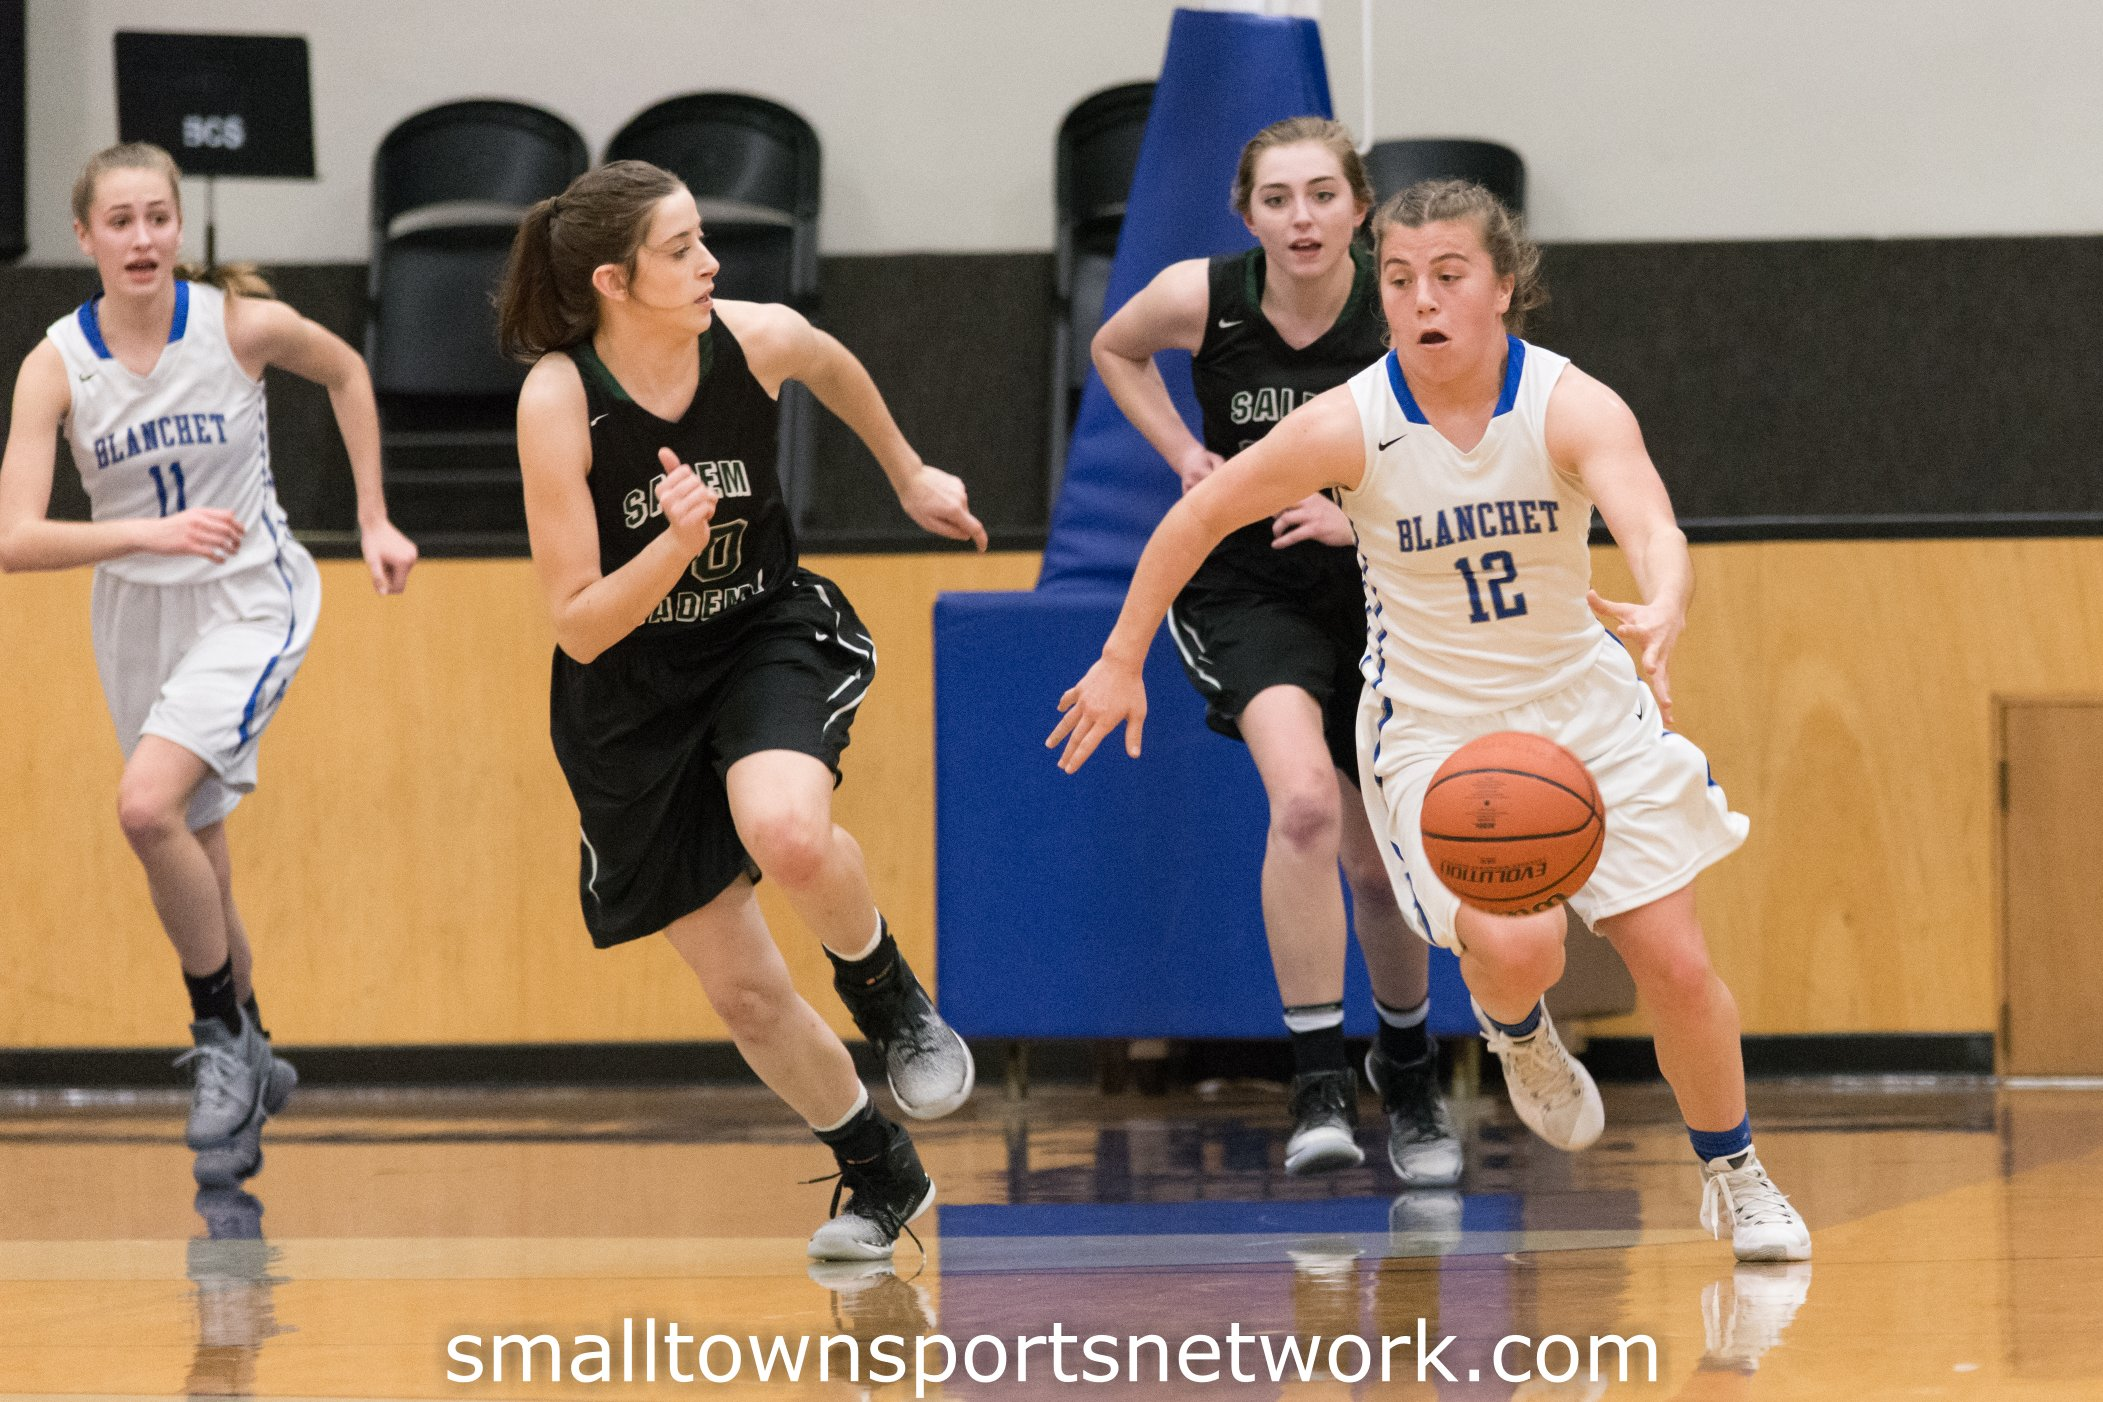 Salem Academy Improves to 17-1 With Win Over Blanchet Catholic